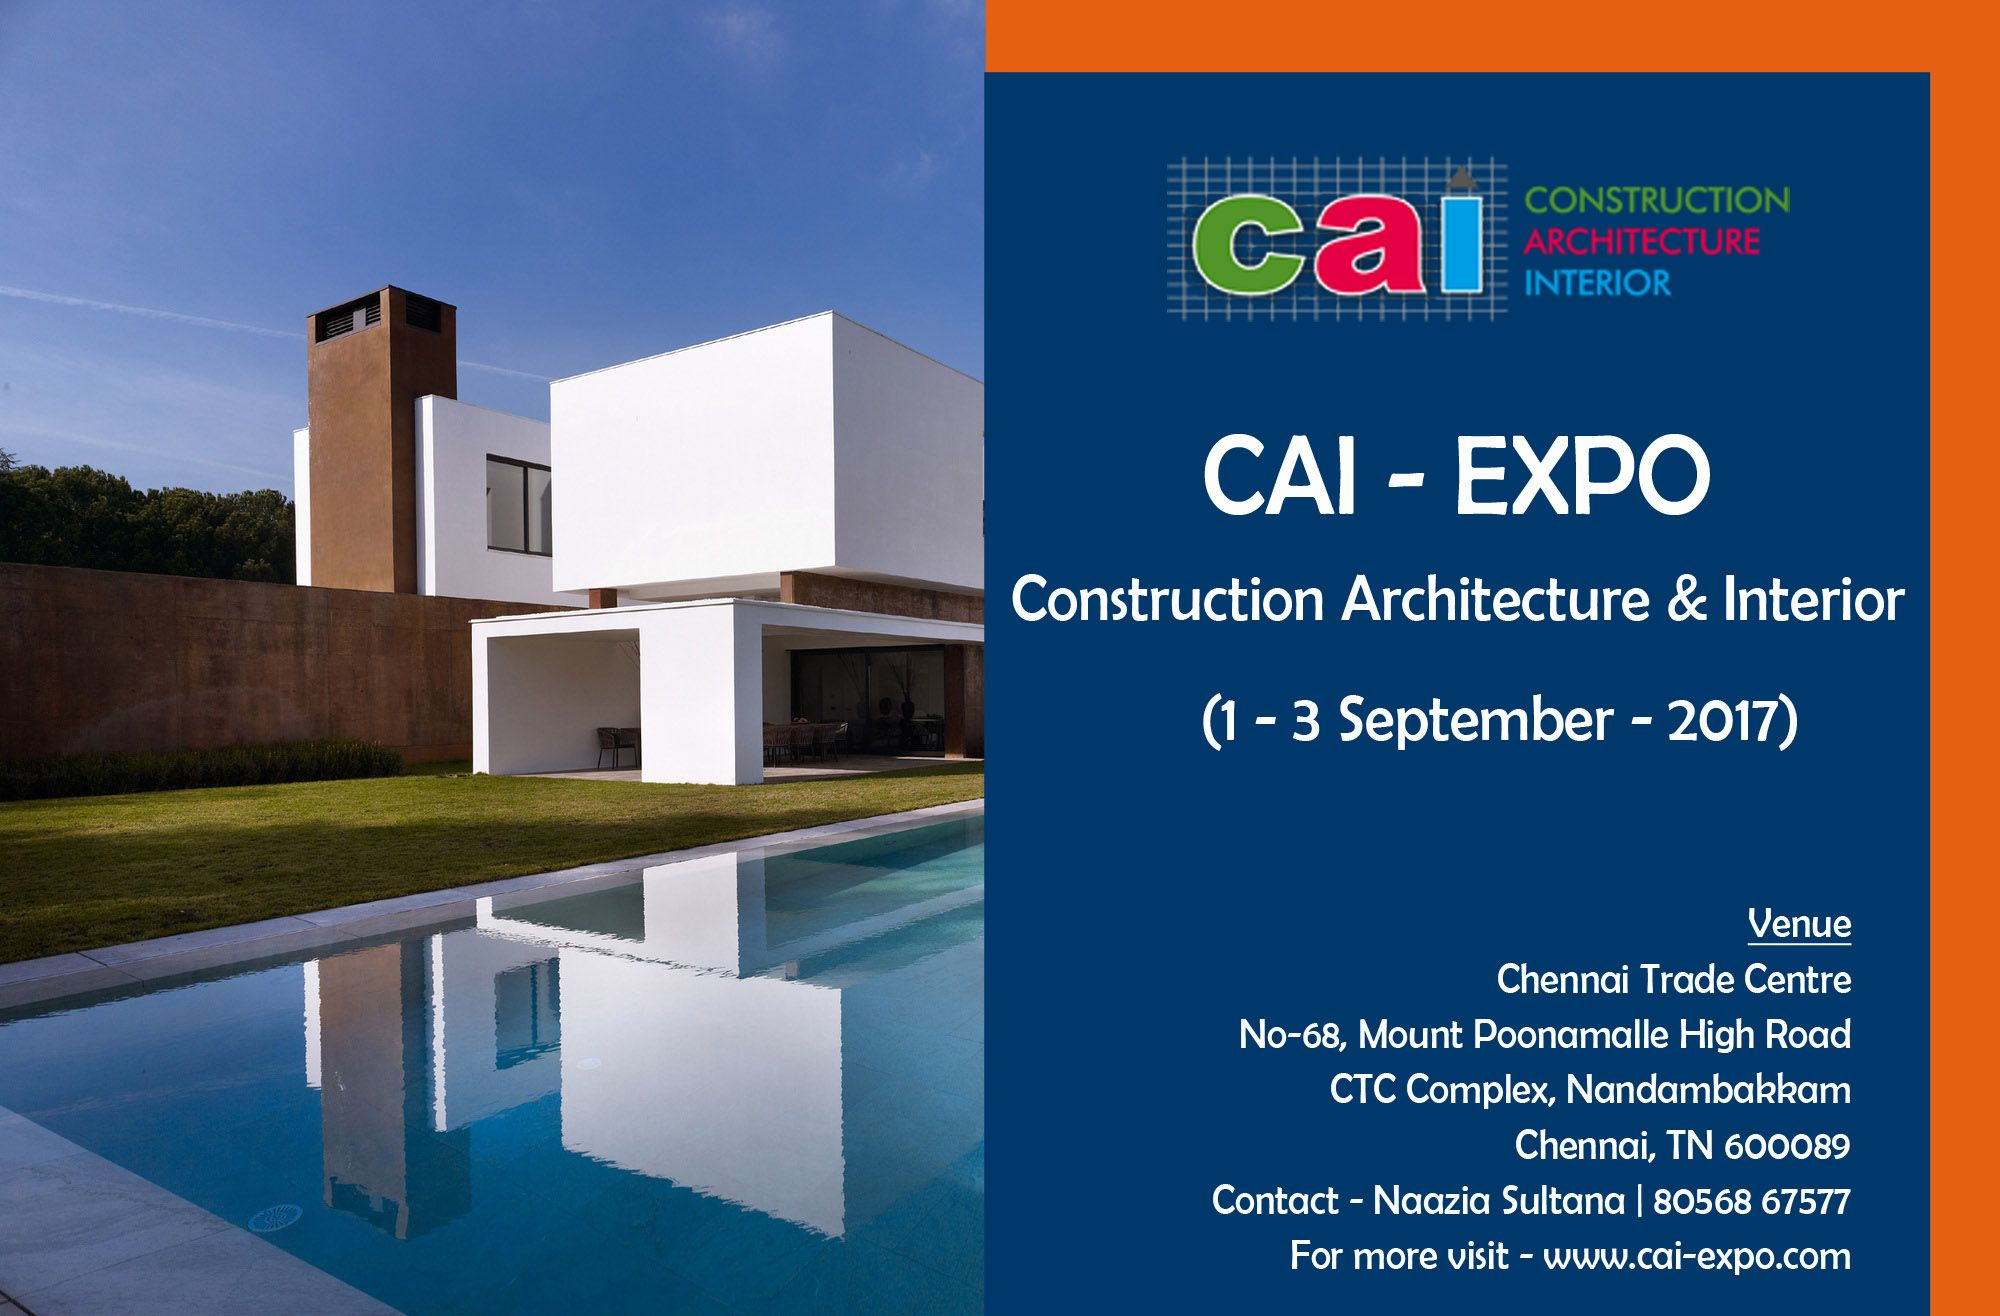 CONSTRUCTION ARCHITECTURE INTERIOR DESIGN EVENTS EXHIBITION 2017 CAI Construction